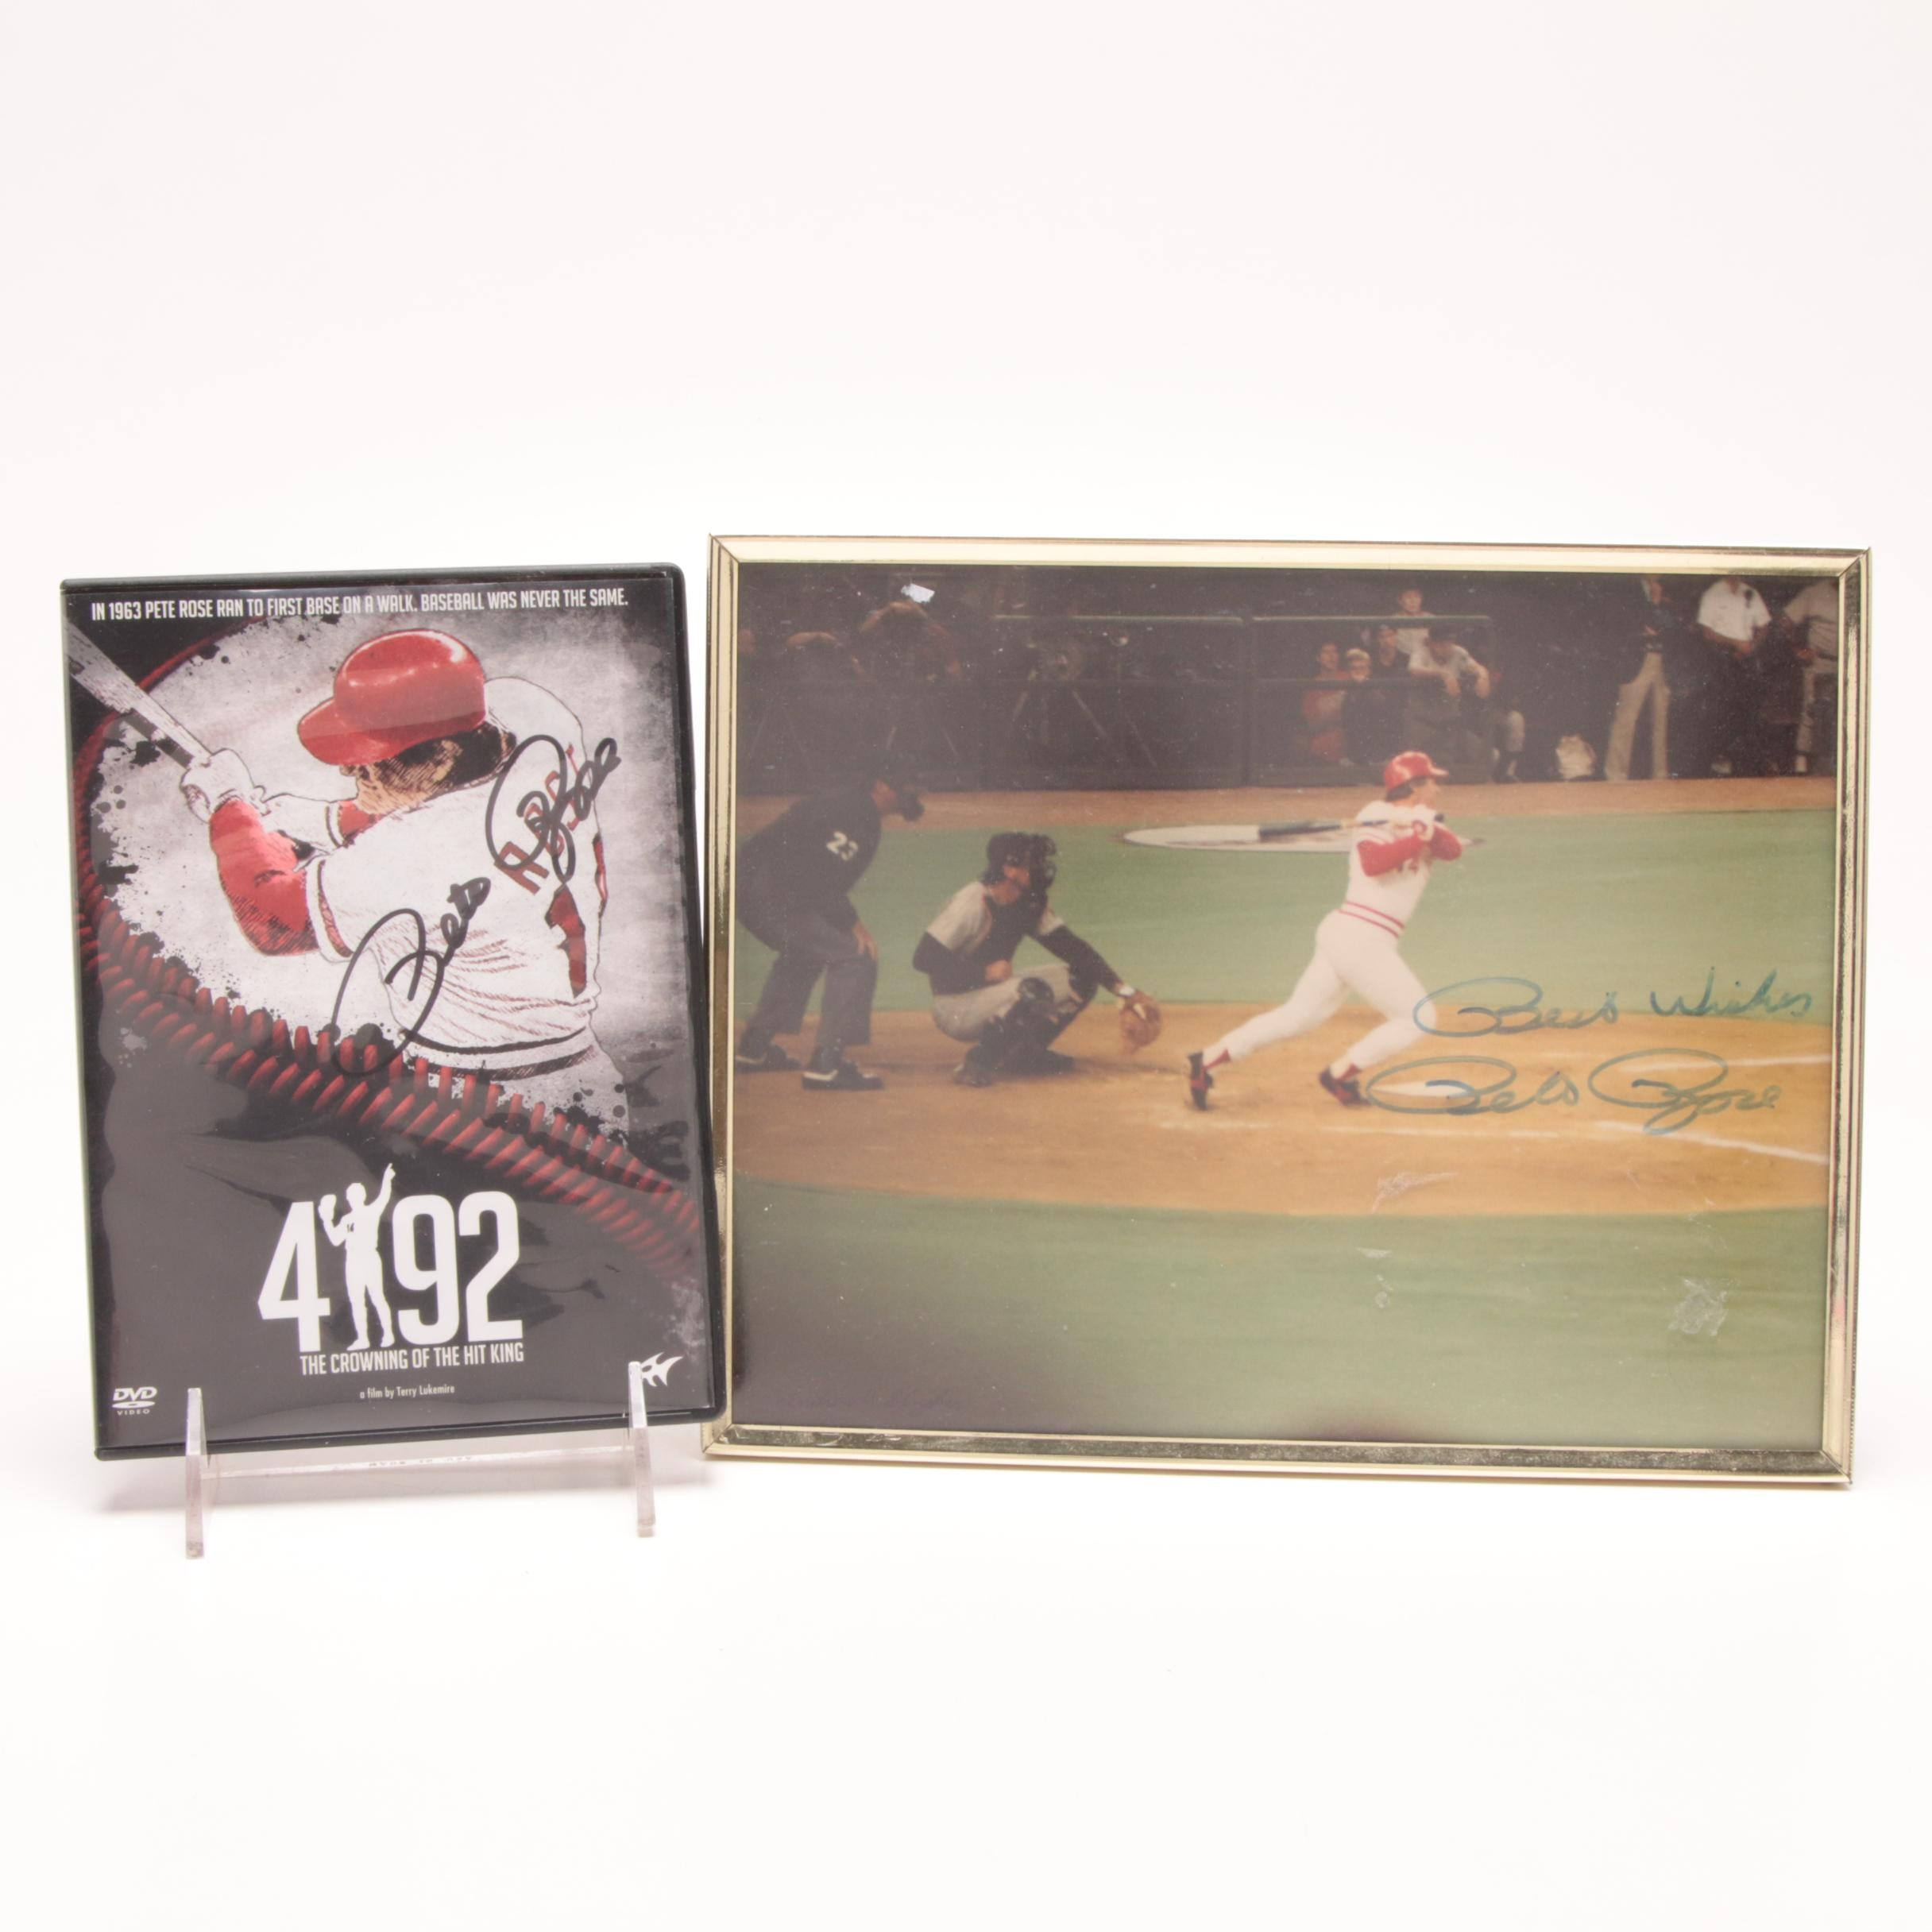 """Pete Rose Autographed Photo  and """"4192: The Crowning of the Hit King"""" DVD"""